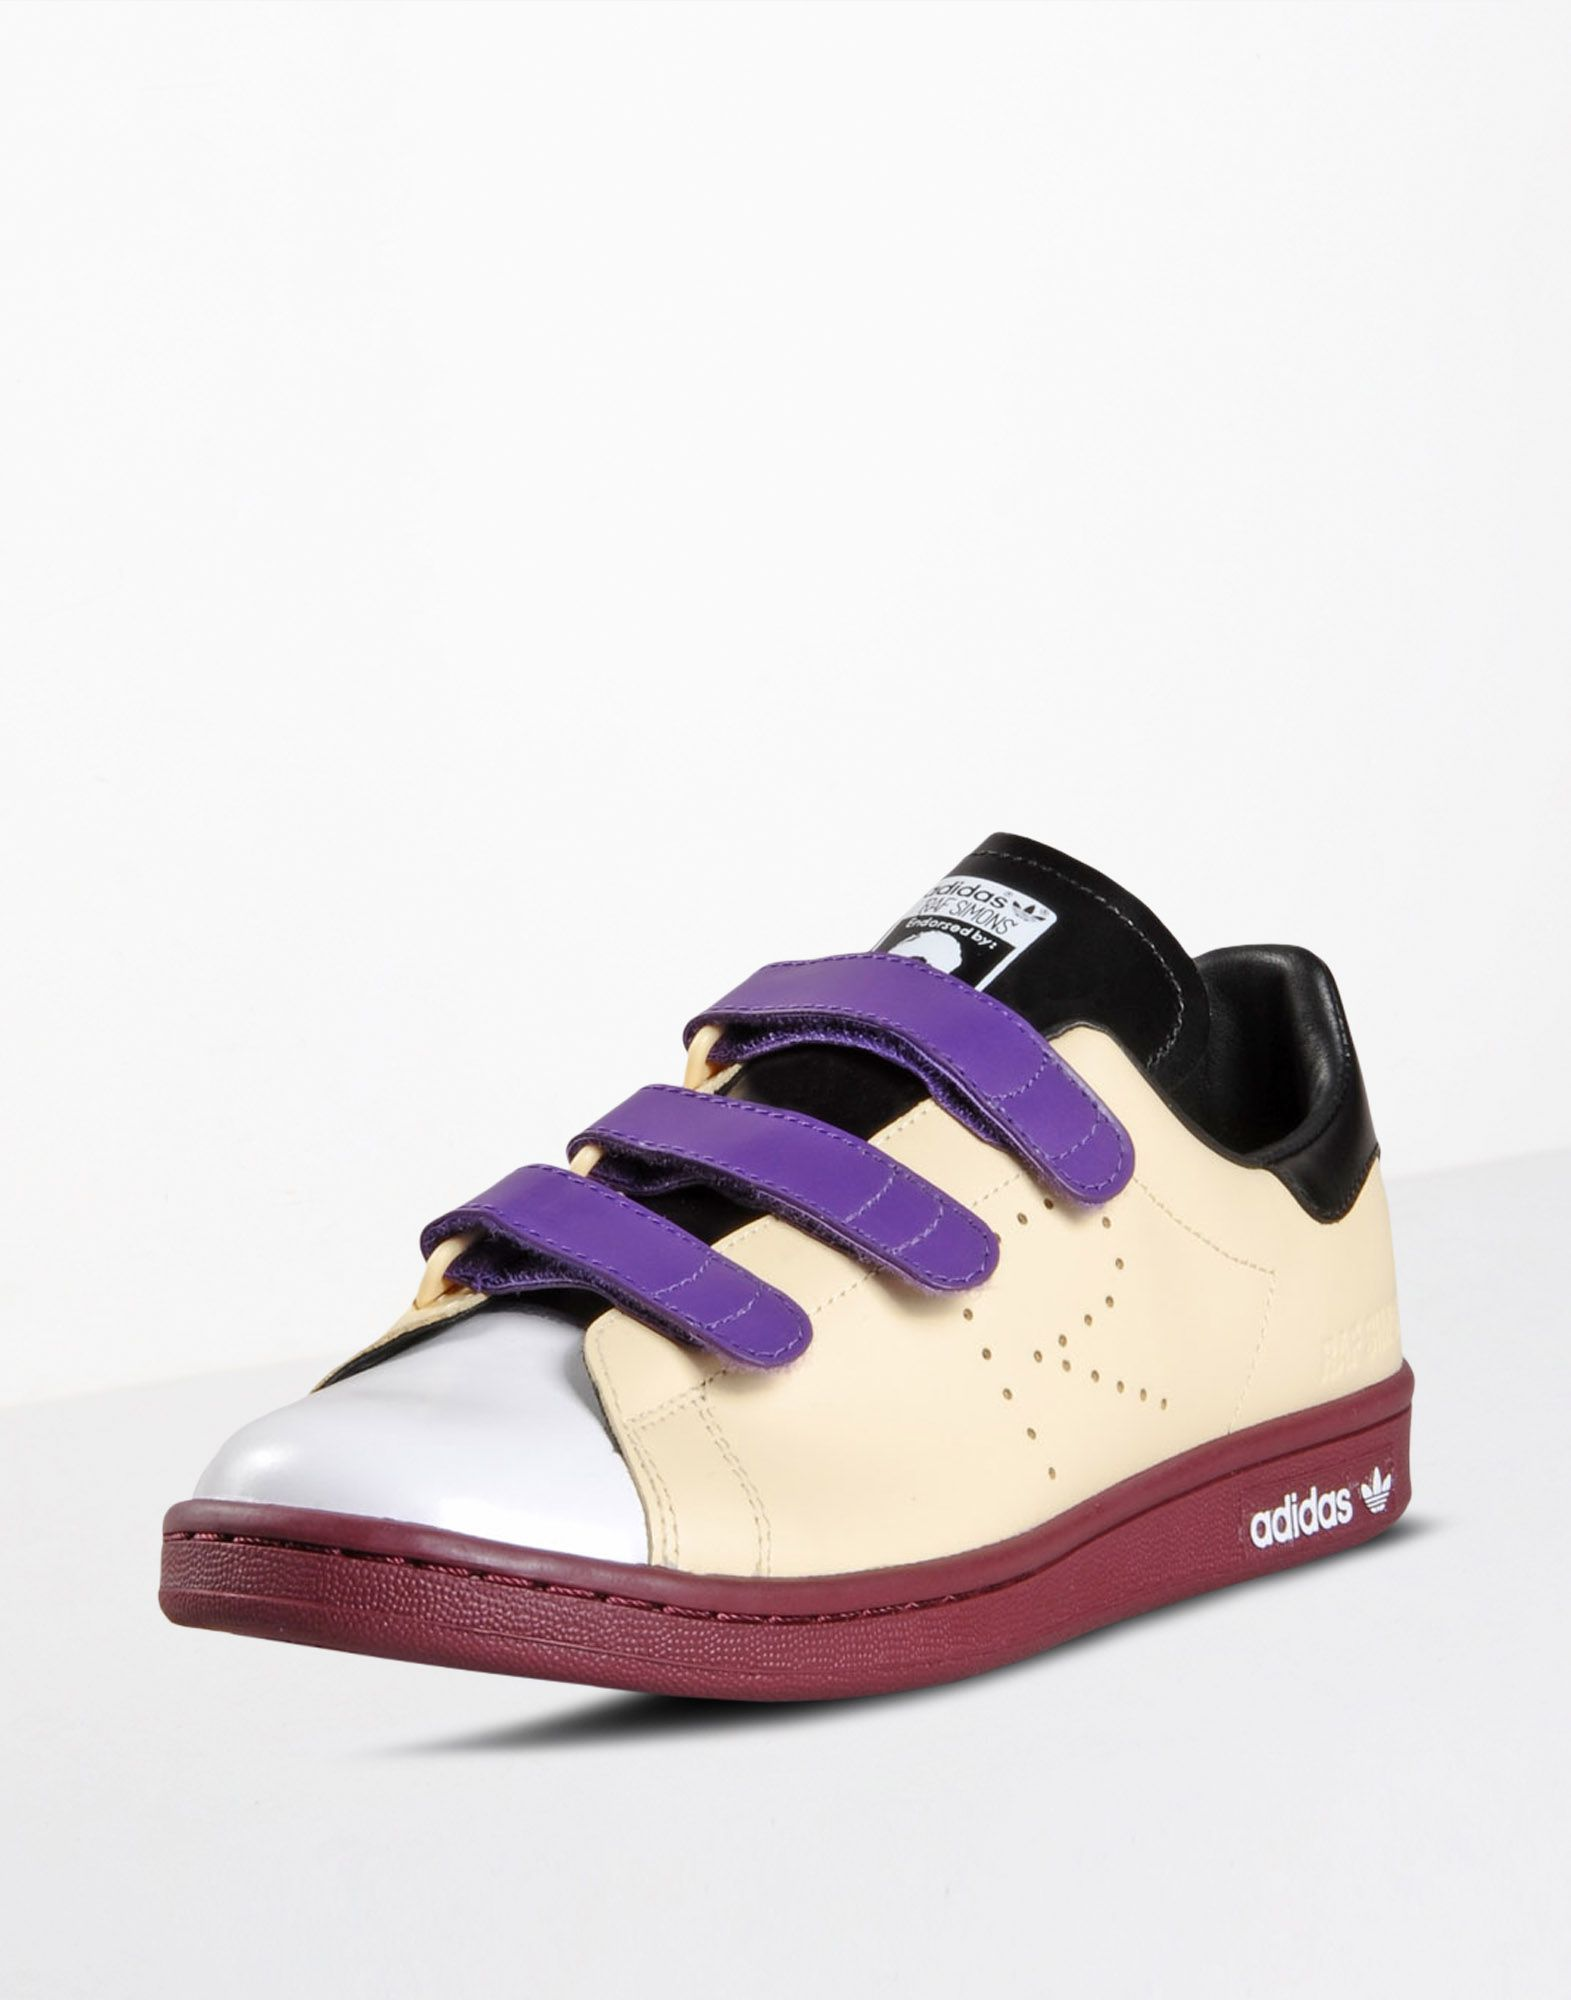 magasin en ligne 9b74b 2595b RAF SIMONS STAN SMITH COMFORT Sneakers | Adidas Y-3 Official ...